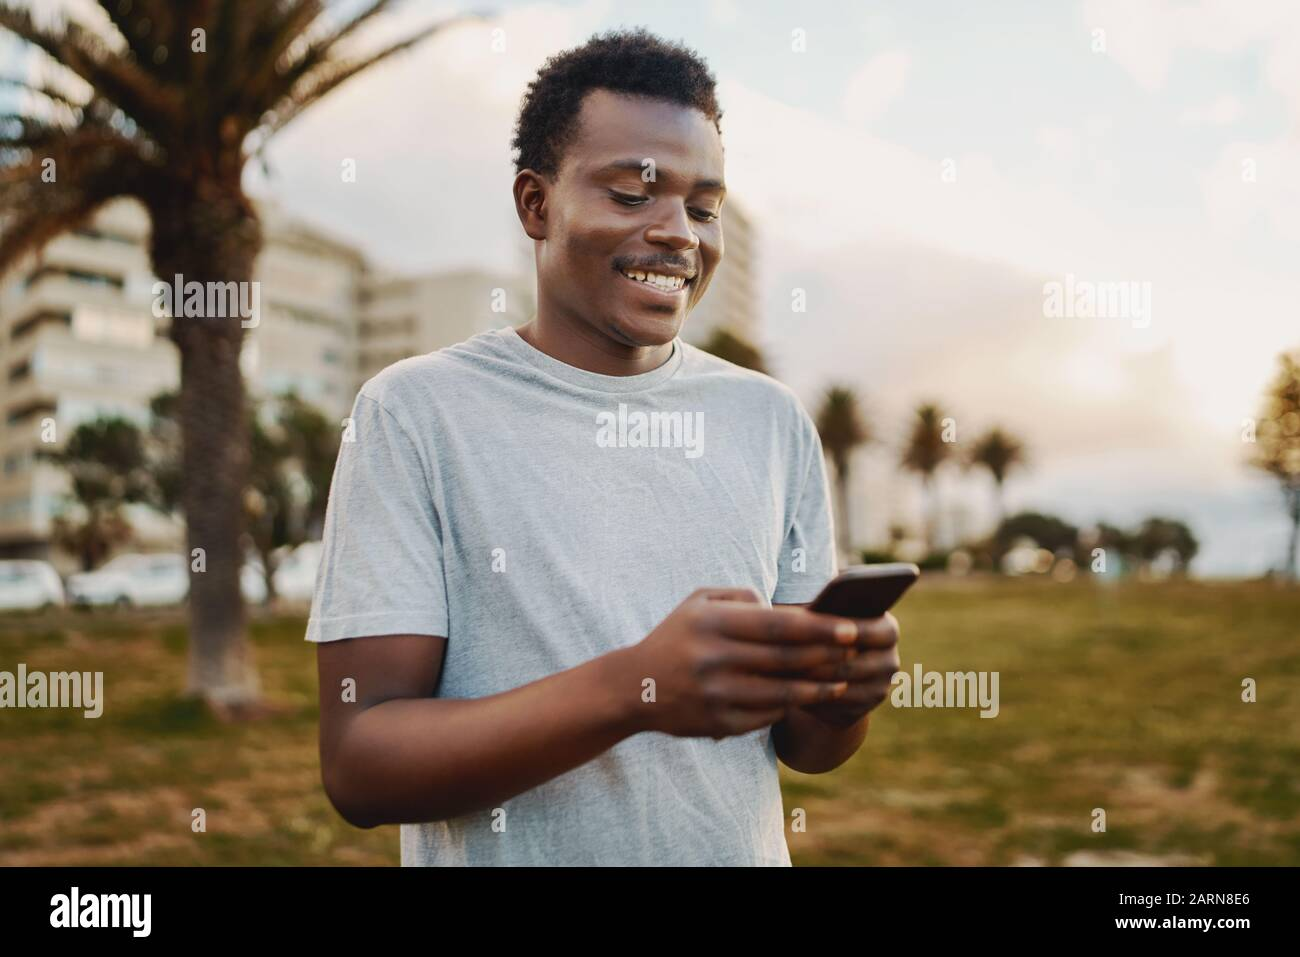 Portrait of a sportive young african american man smiling while texting messages on mobile phone in the park Stock Photo